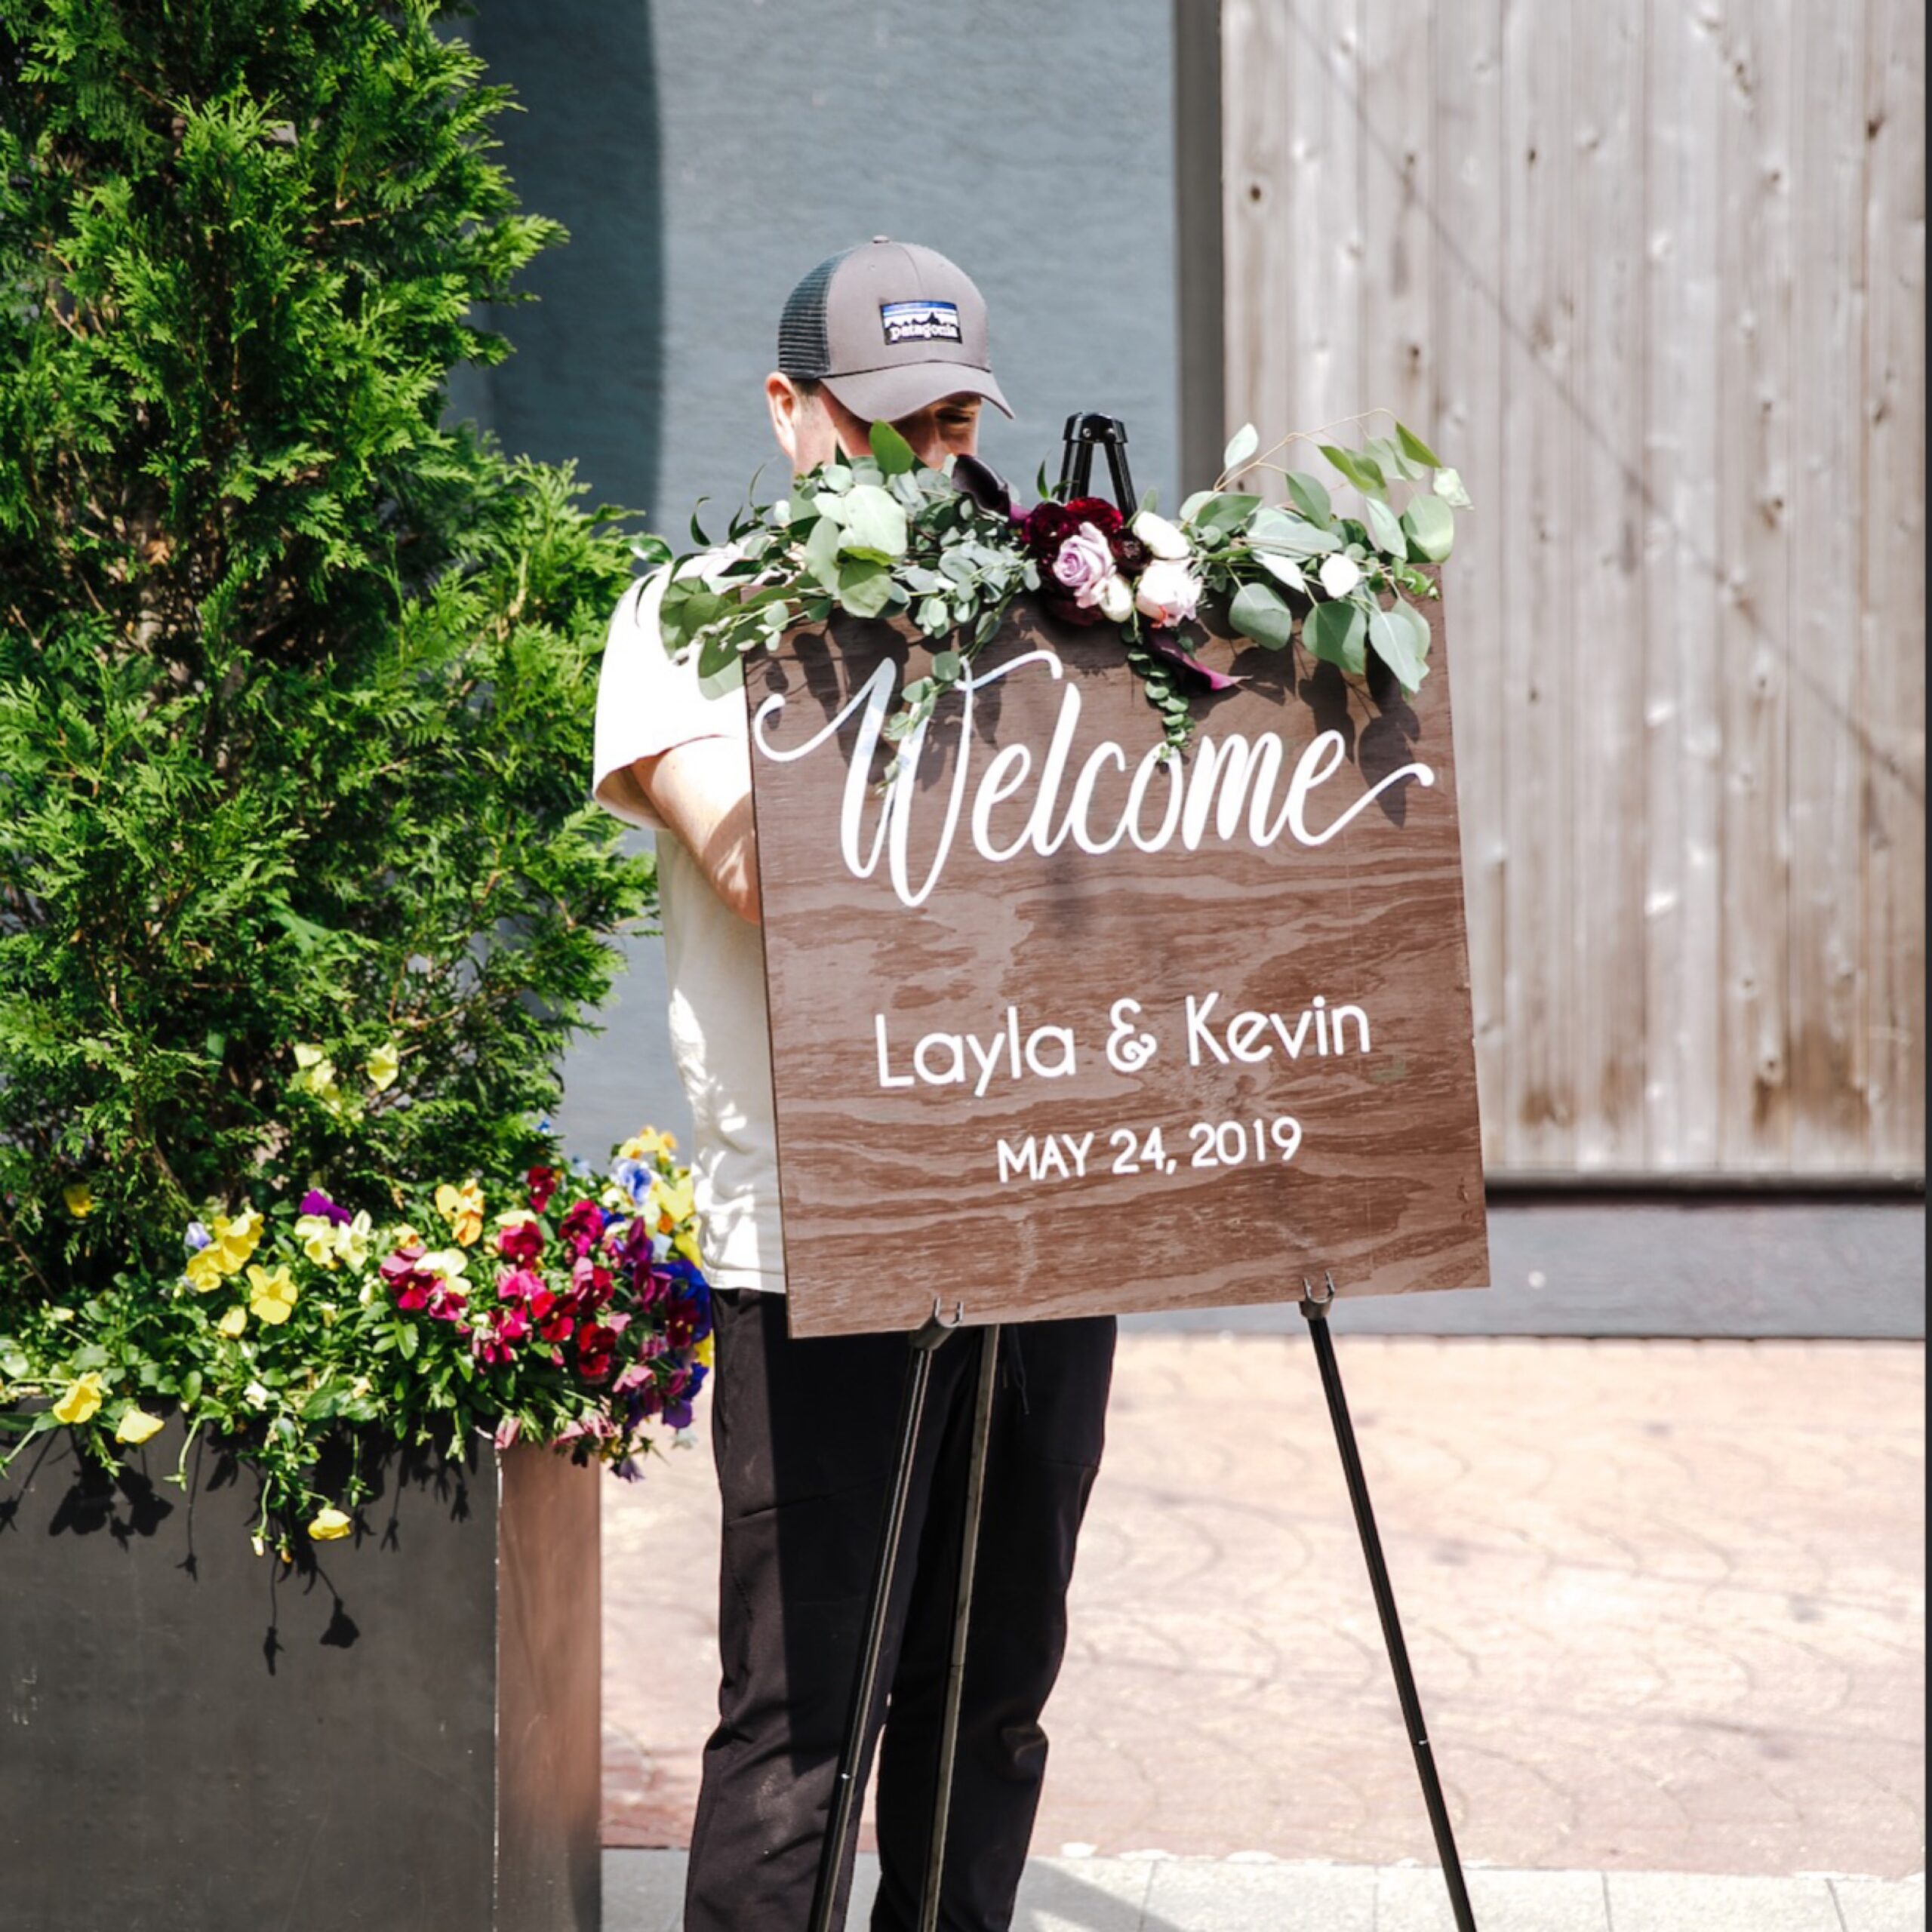 Jonathan installing florals on site for a wedding.